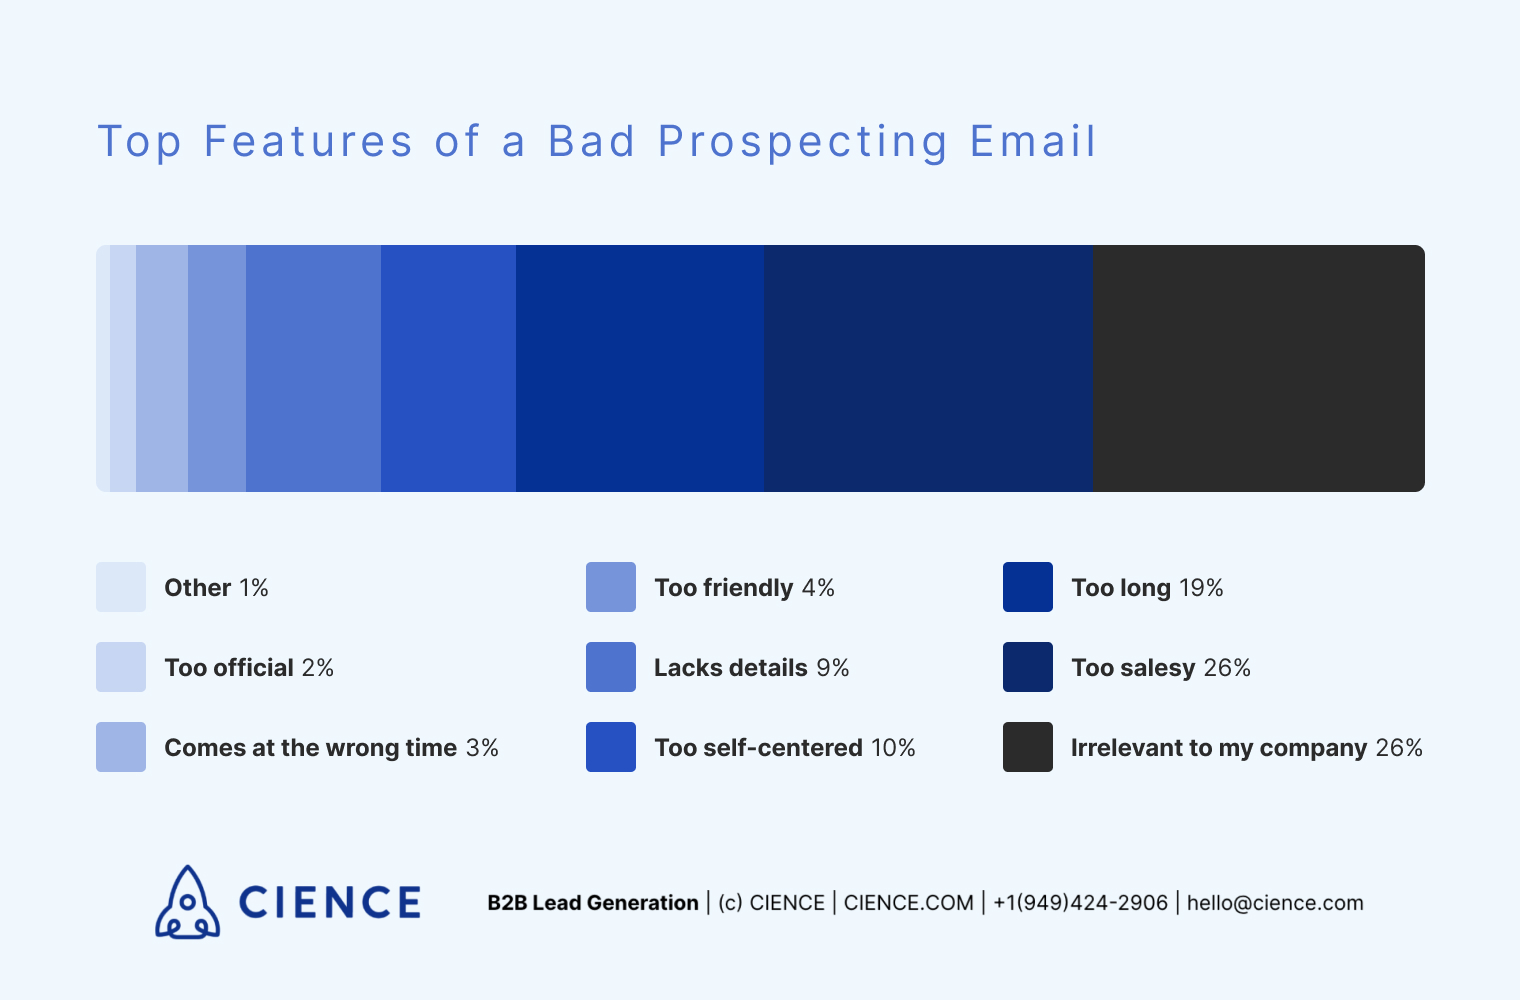 Top features of a bad prospecting email